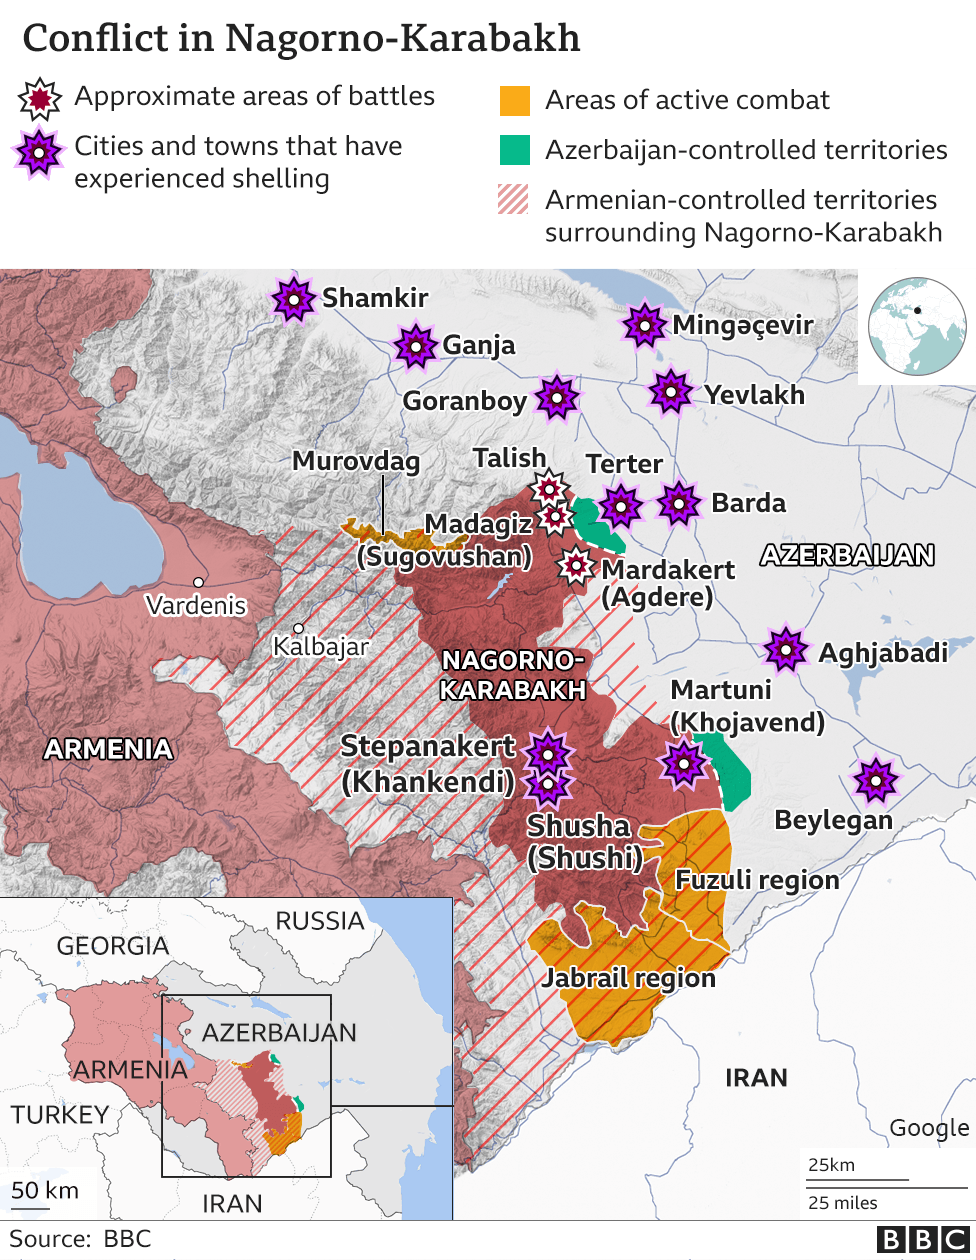 Nagorno-Karabakh: Iran warns of 'regional war' as fighting rages thumbnail